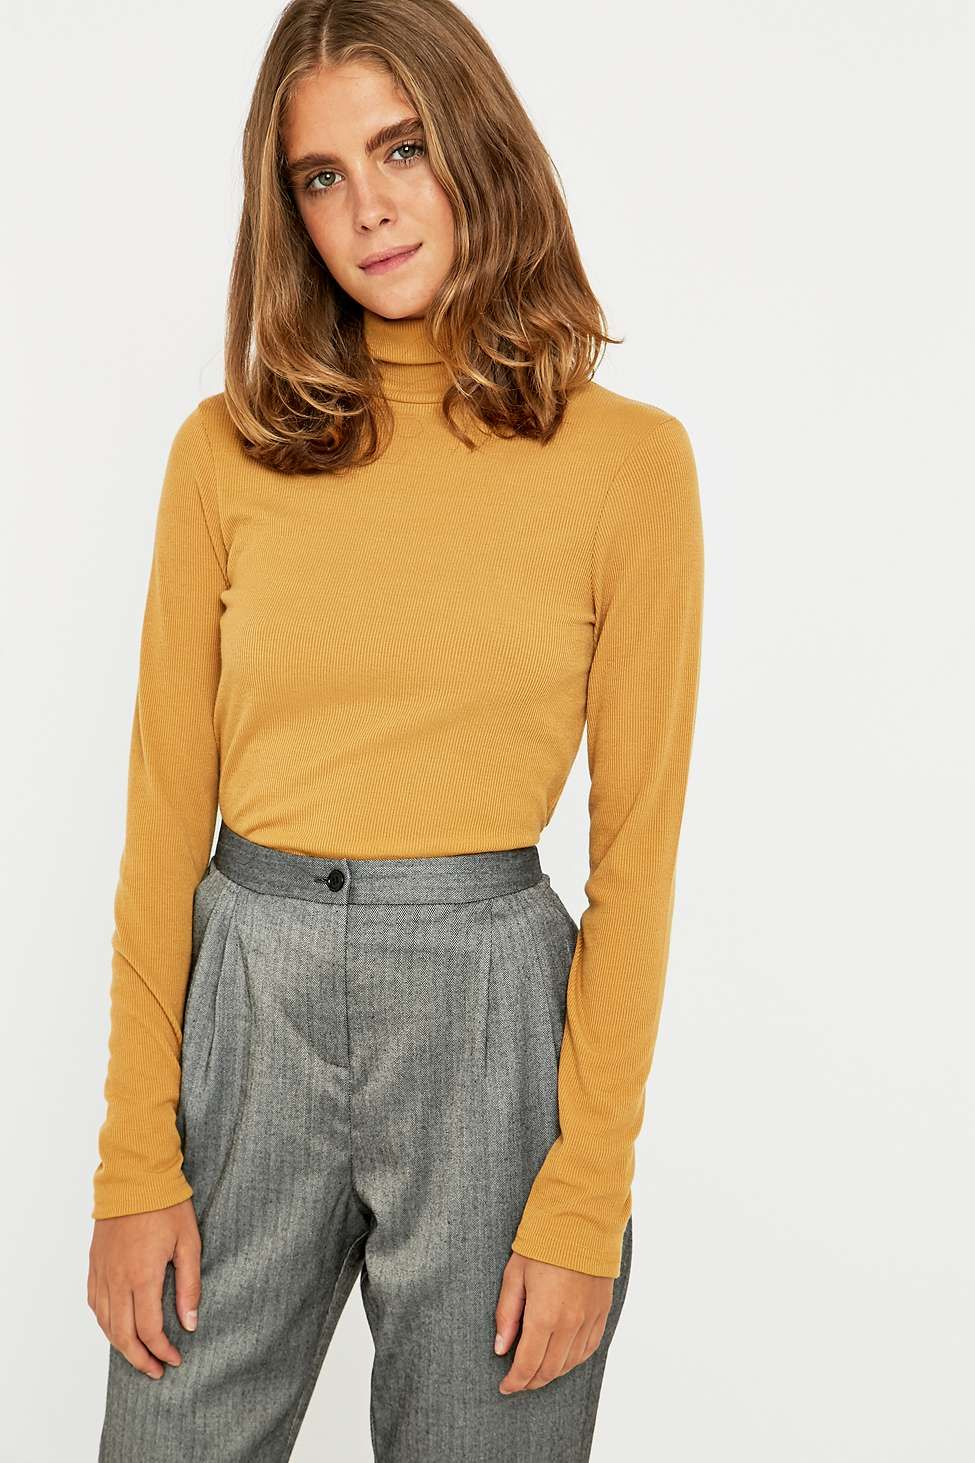 98 Best Urban Outfitters images | Jumper shirt, Cropped